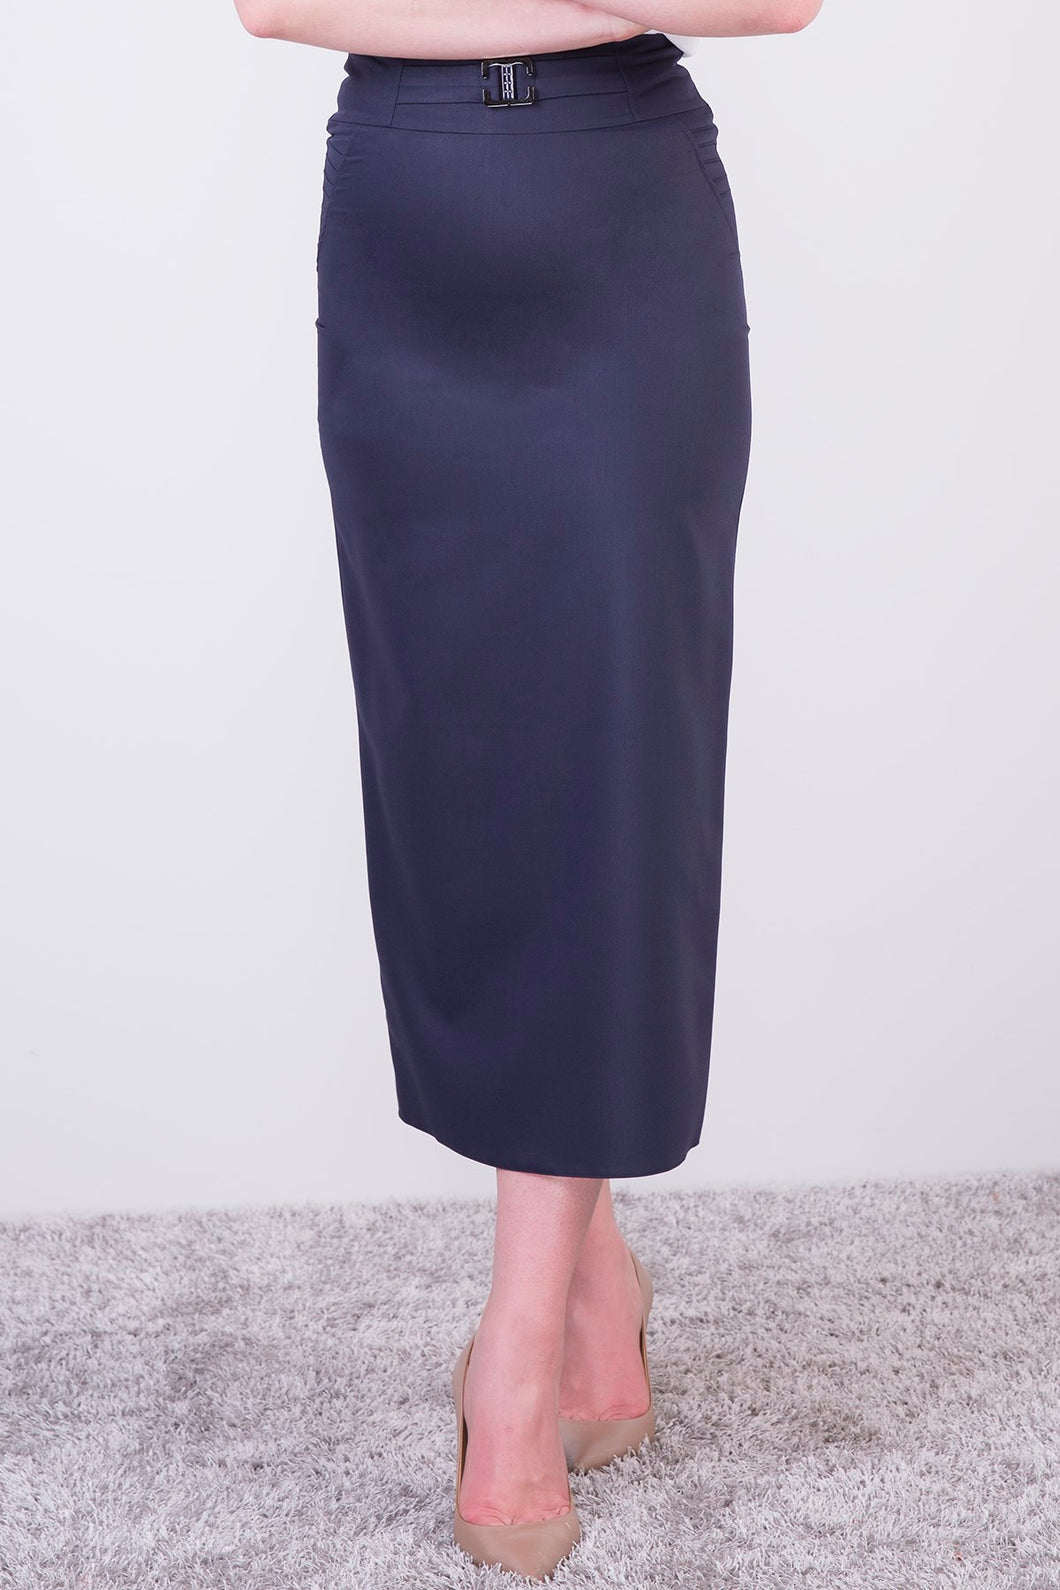 Women's Midi Pencil Skirt